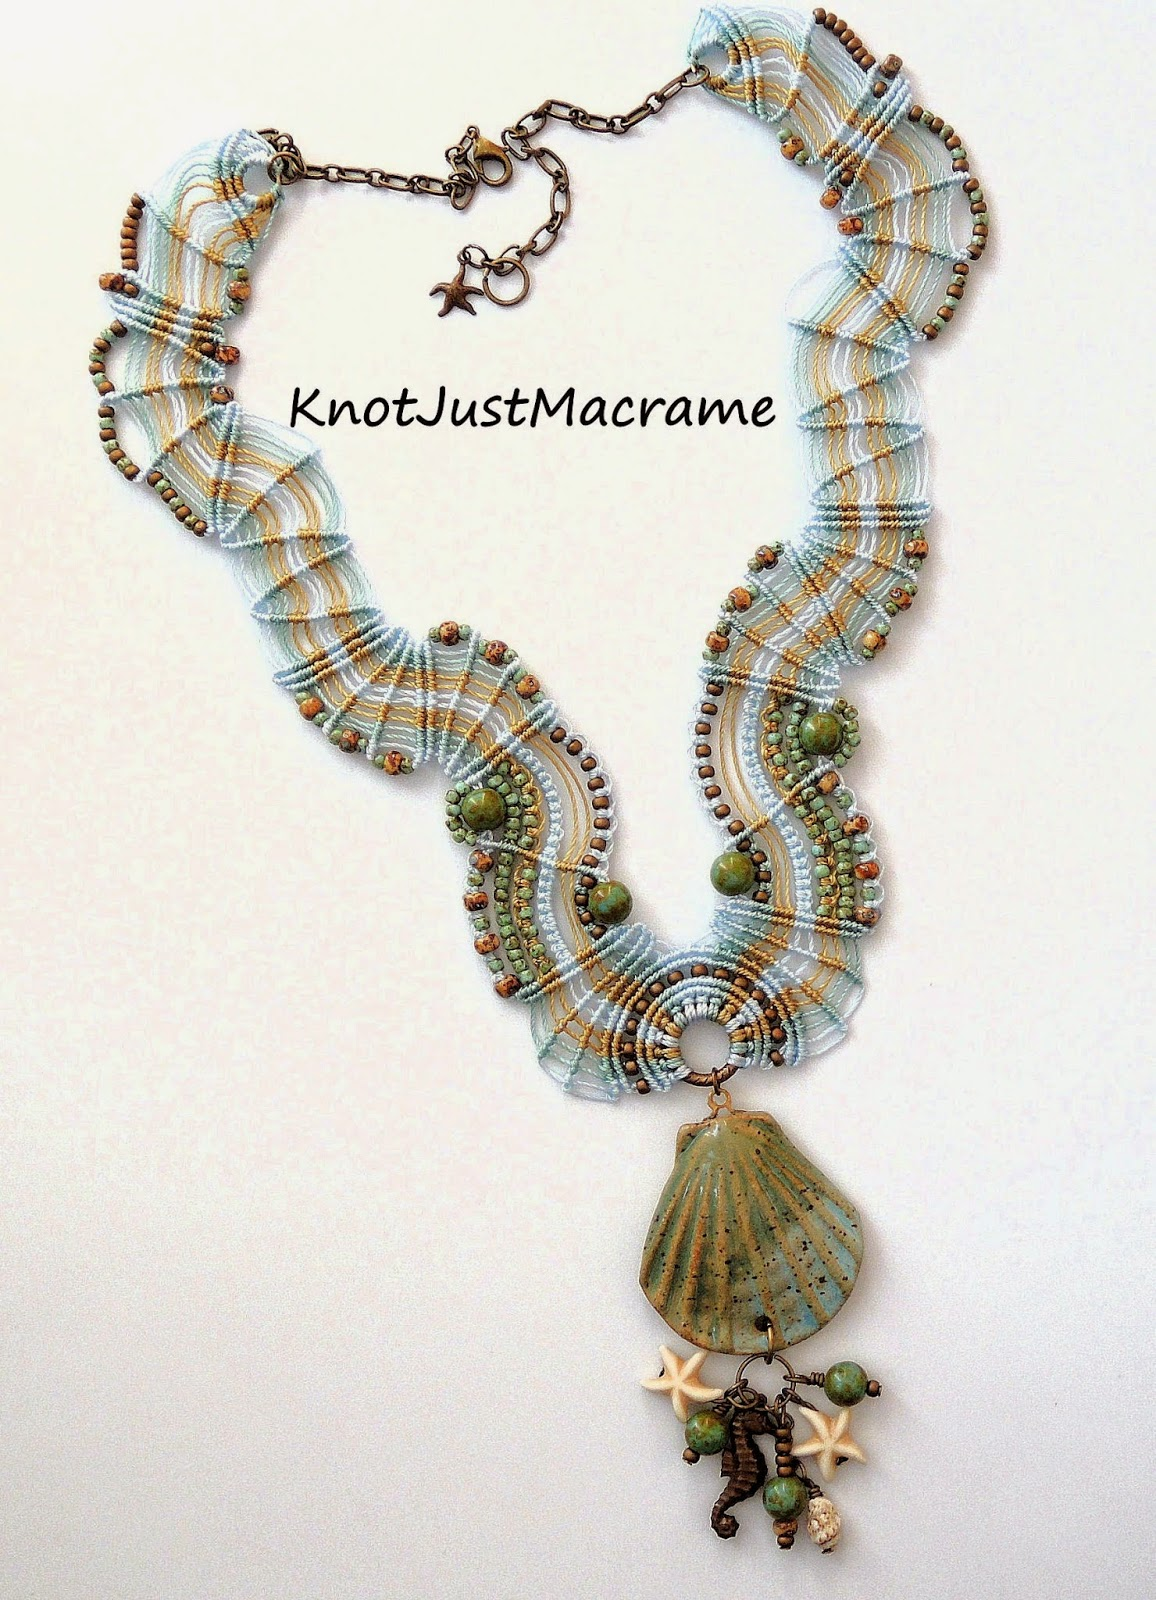 Micro macrame necklace by Sherri Stokey with ceramic shell pendant by Firefly Design Studio